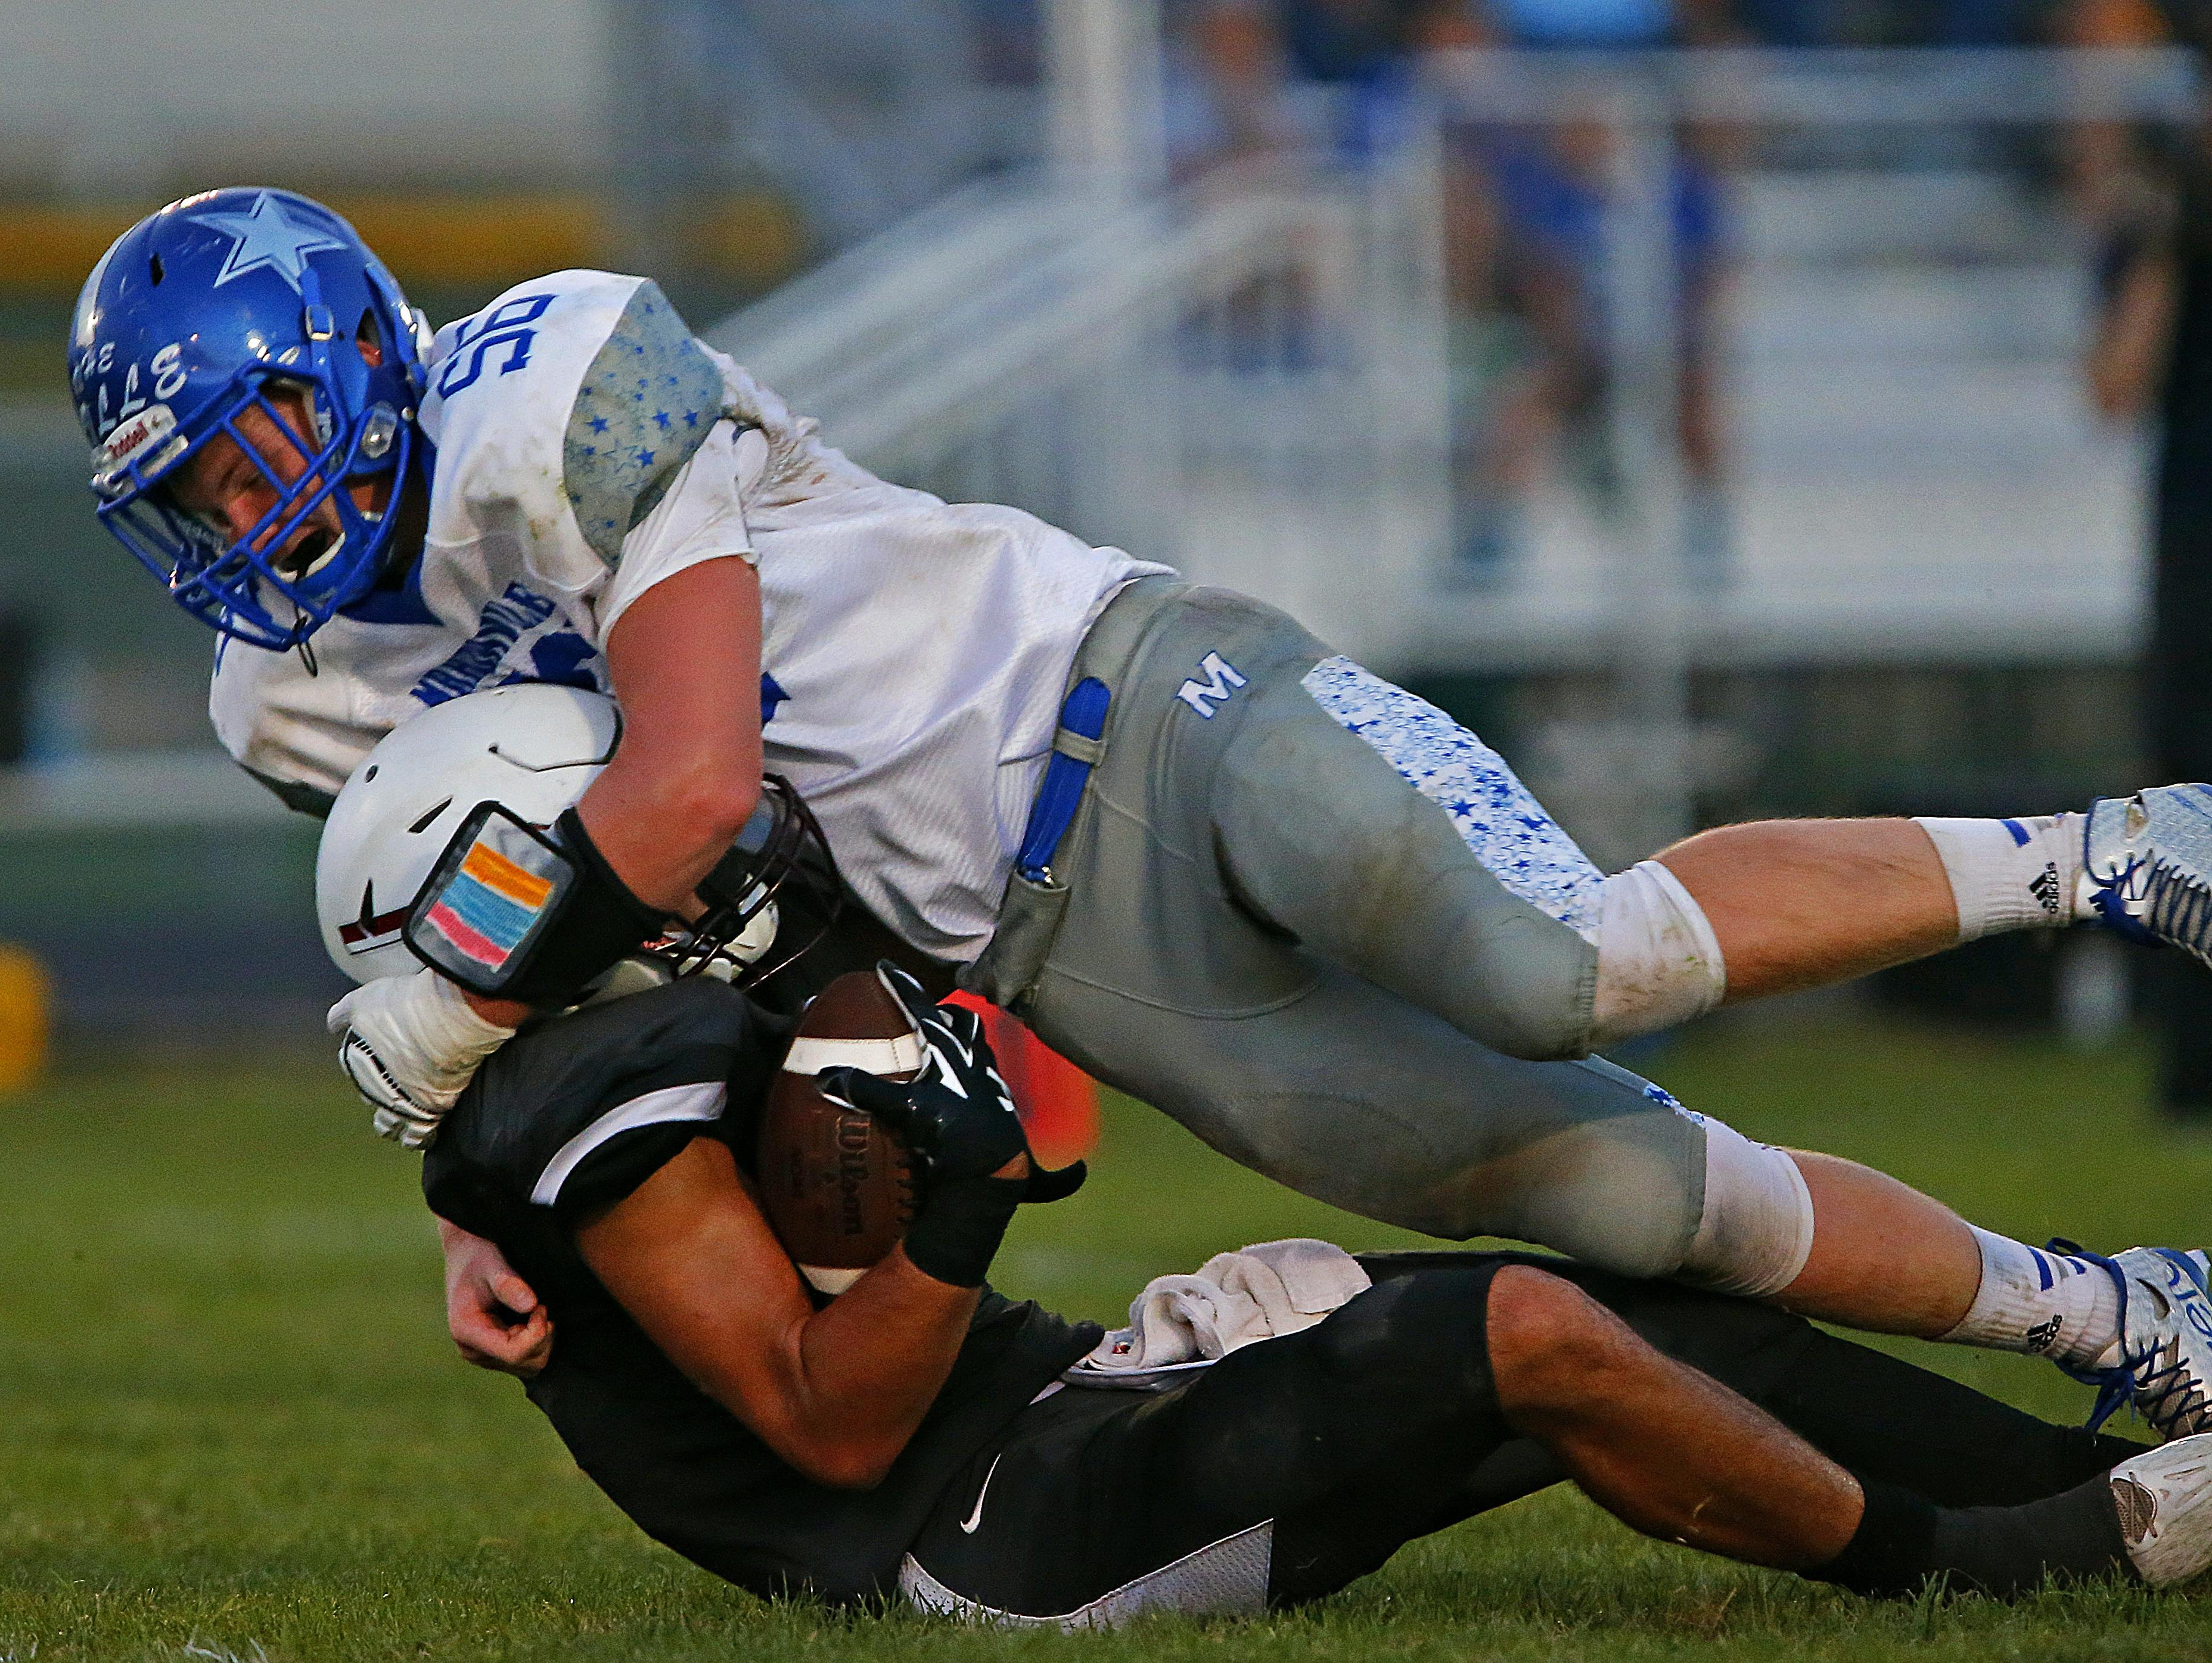 Strafford High School wide receiver Brady Wilson (1) is tackled by Comet defender Waylon Davis (56) during second quarter action of the Indians' game against Marionville High School at Strafford High School in Strafford, Mo. on Sep. 4, 2015. Marionville won the game 28-6.